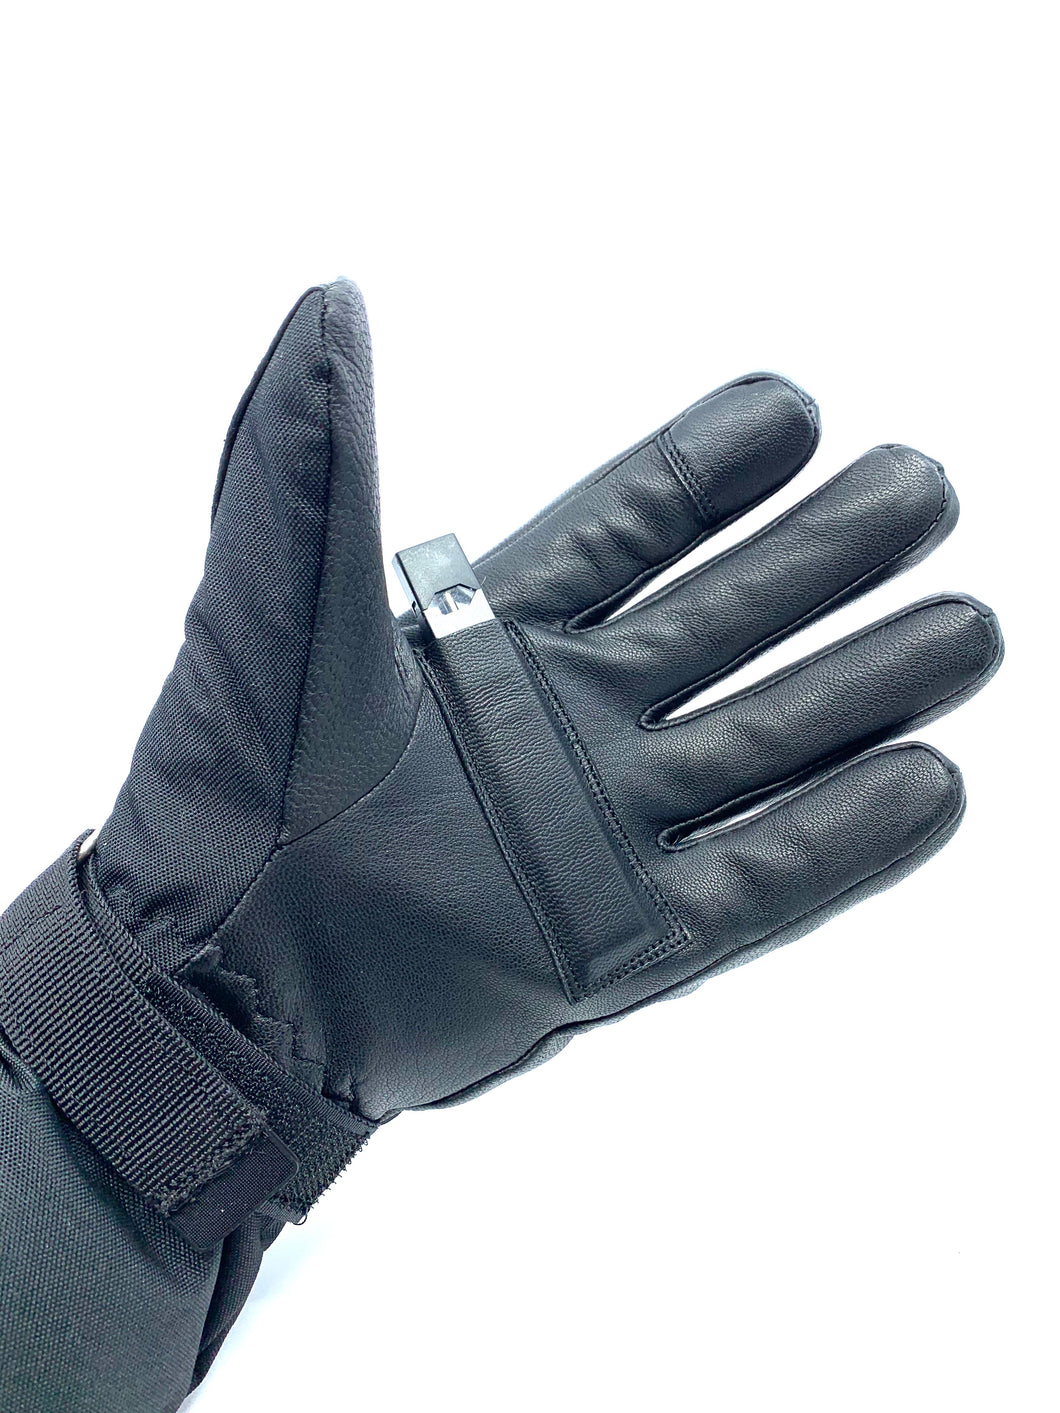 Mountain Puff Gloves ®